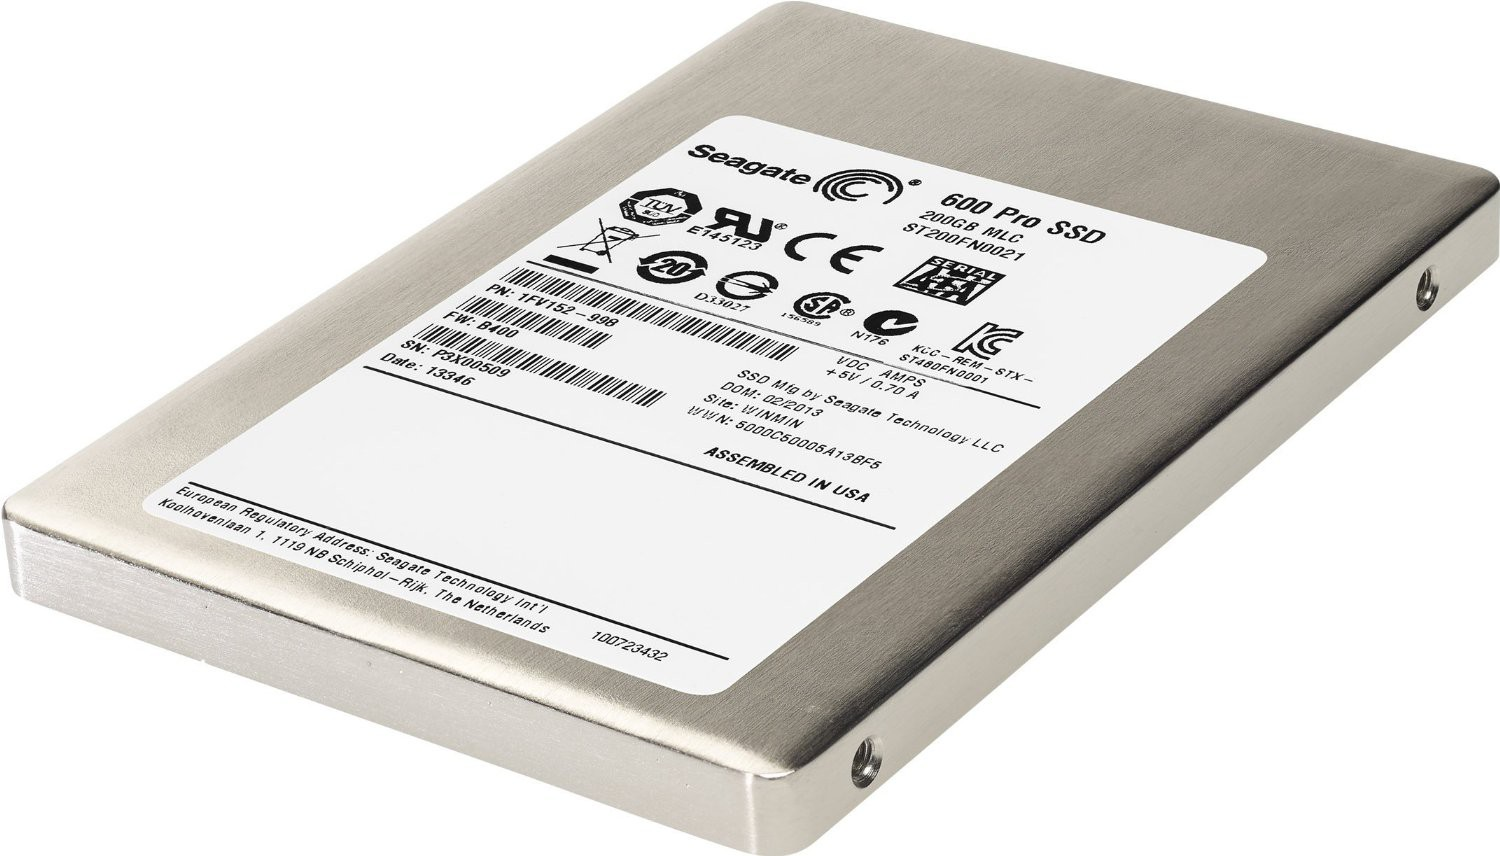 External Hard Drive 2tb Seagate Expansion Stbx2000401 25 Inch Usb 30 Casing Hardisk Sata 600 Samsung Portable Type Disk Enclosure